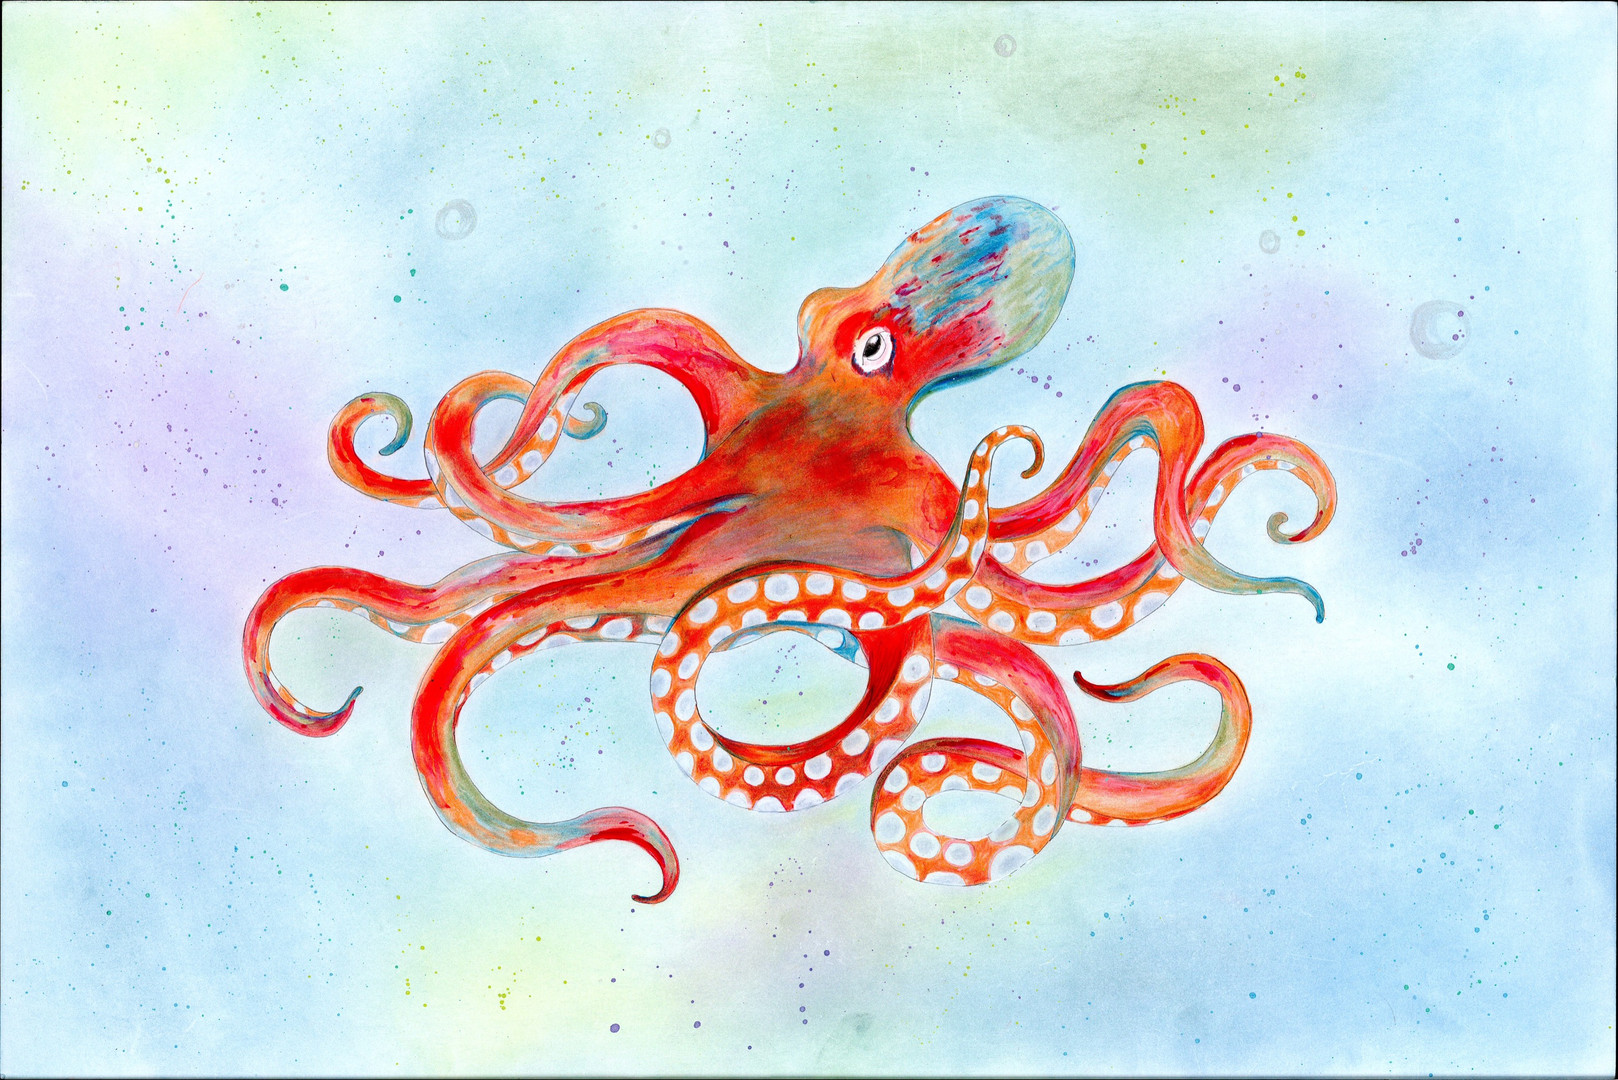 Octopus - DHS